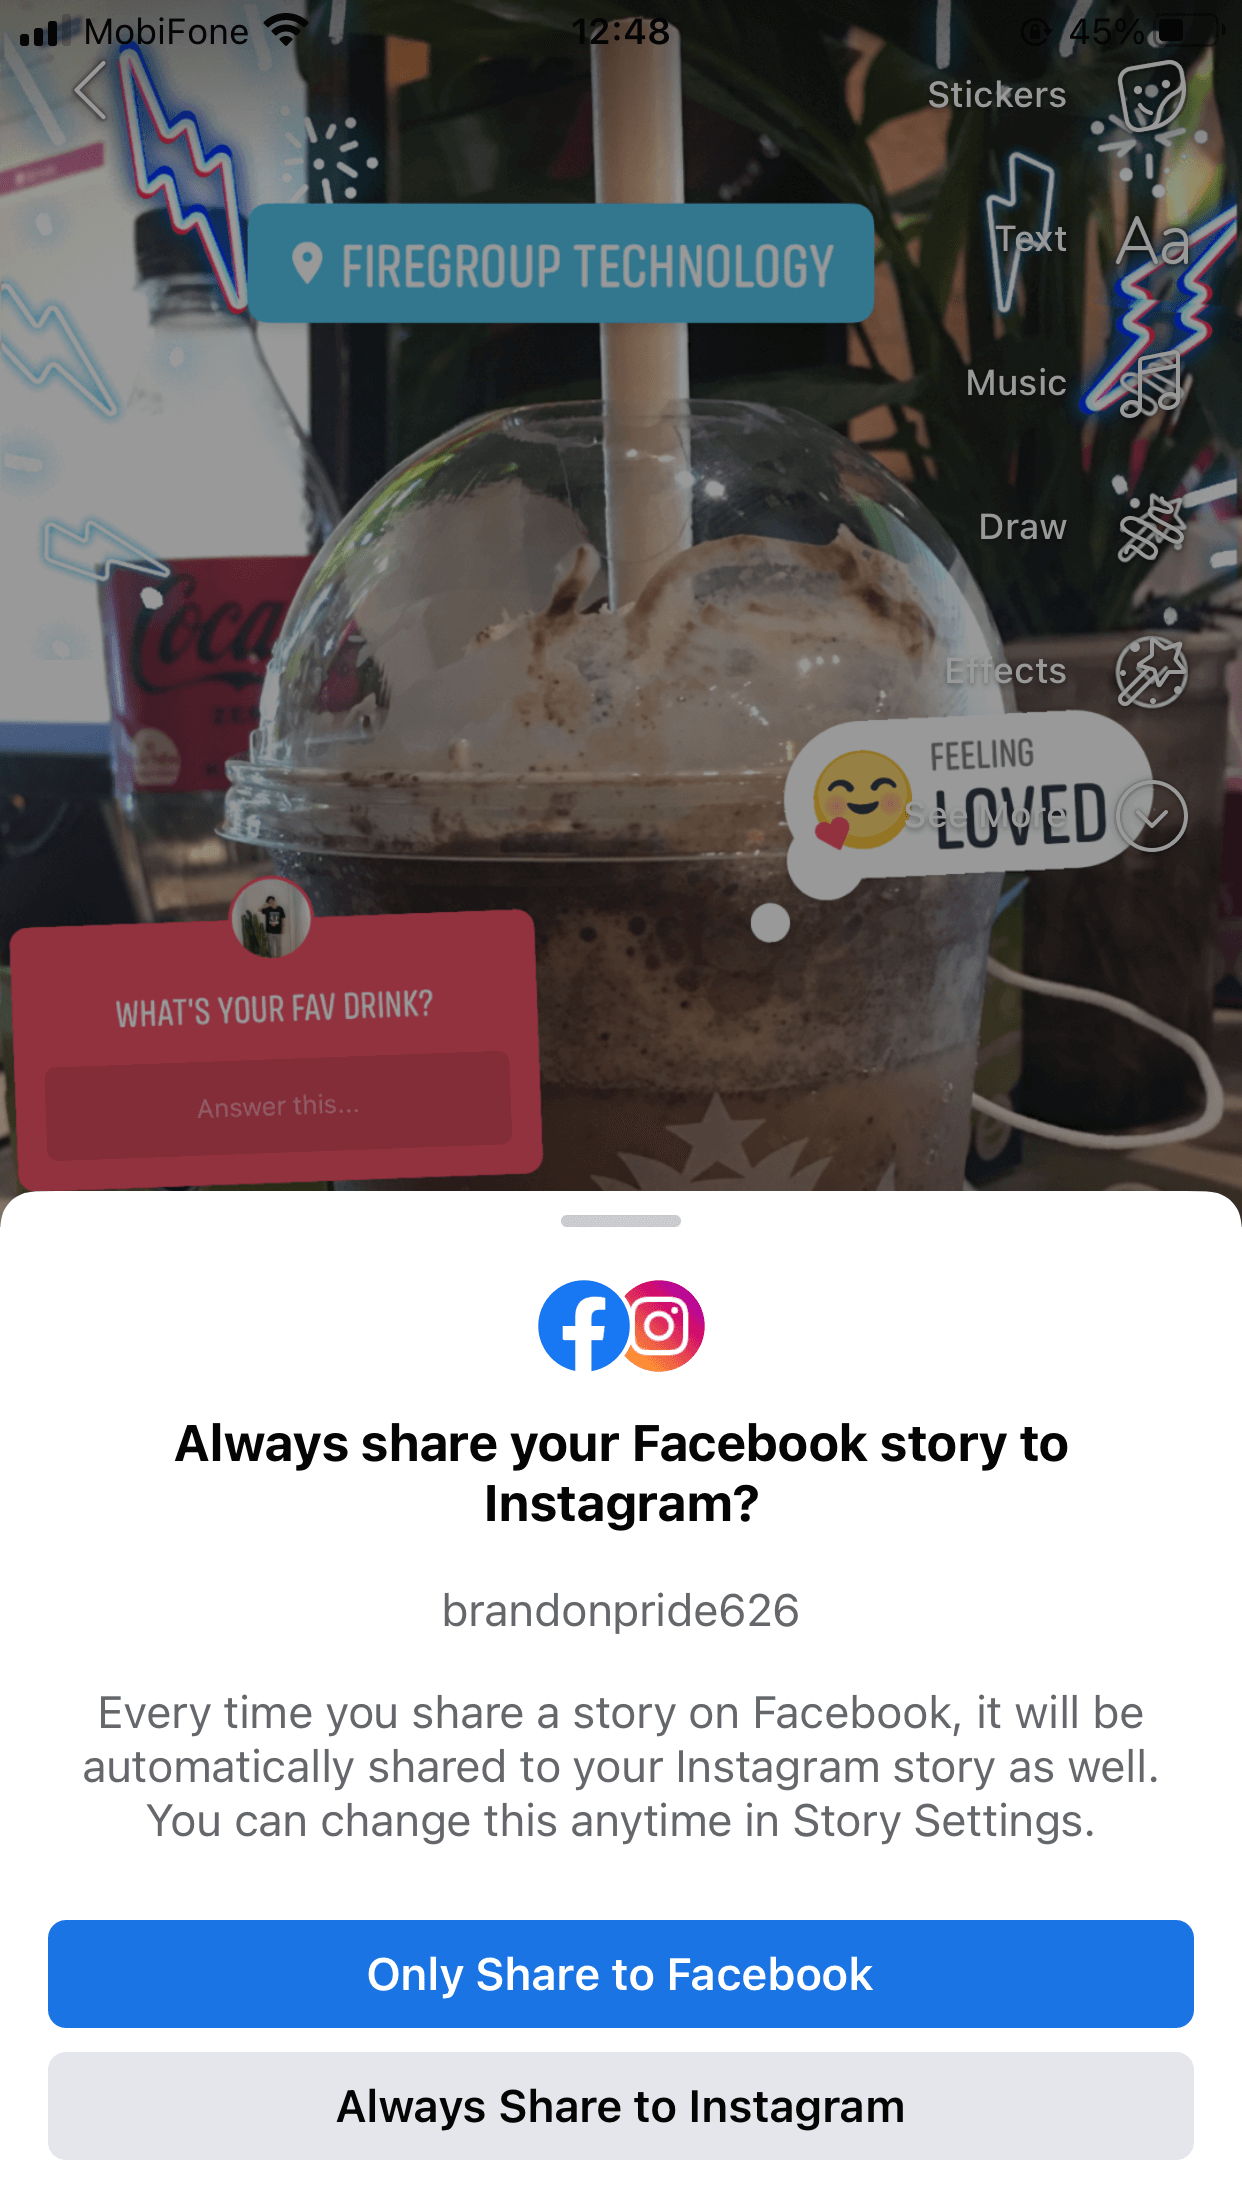 You can now link your Facebook and Instagram Stories and cross-post on the two social media platforms at once!